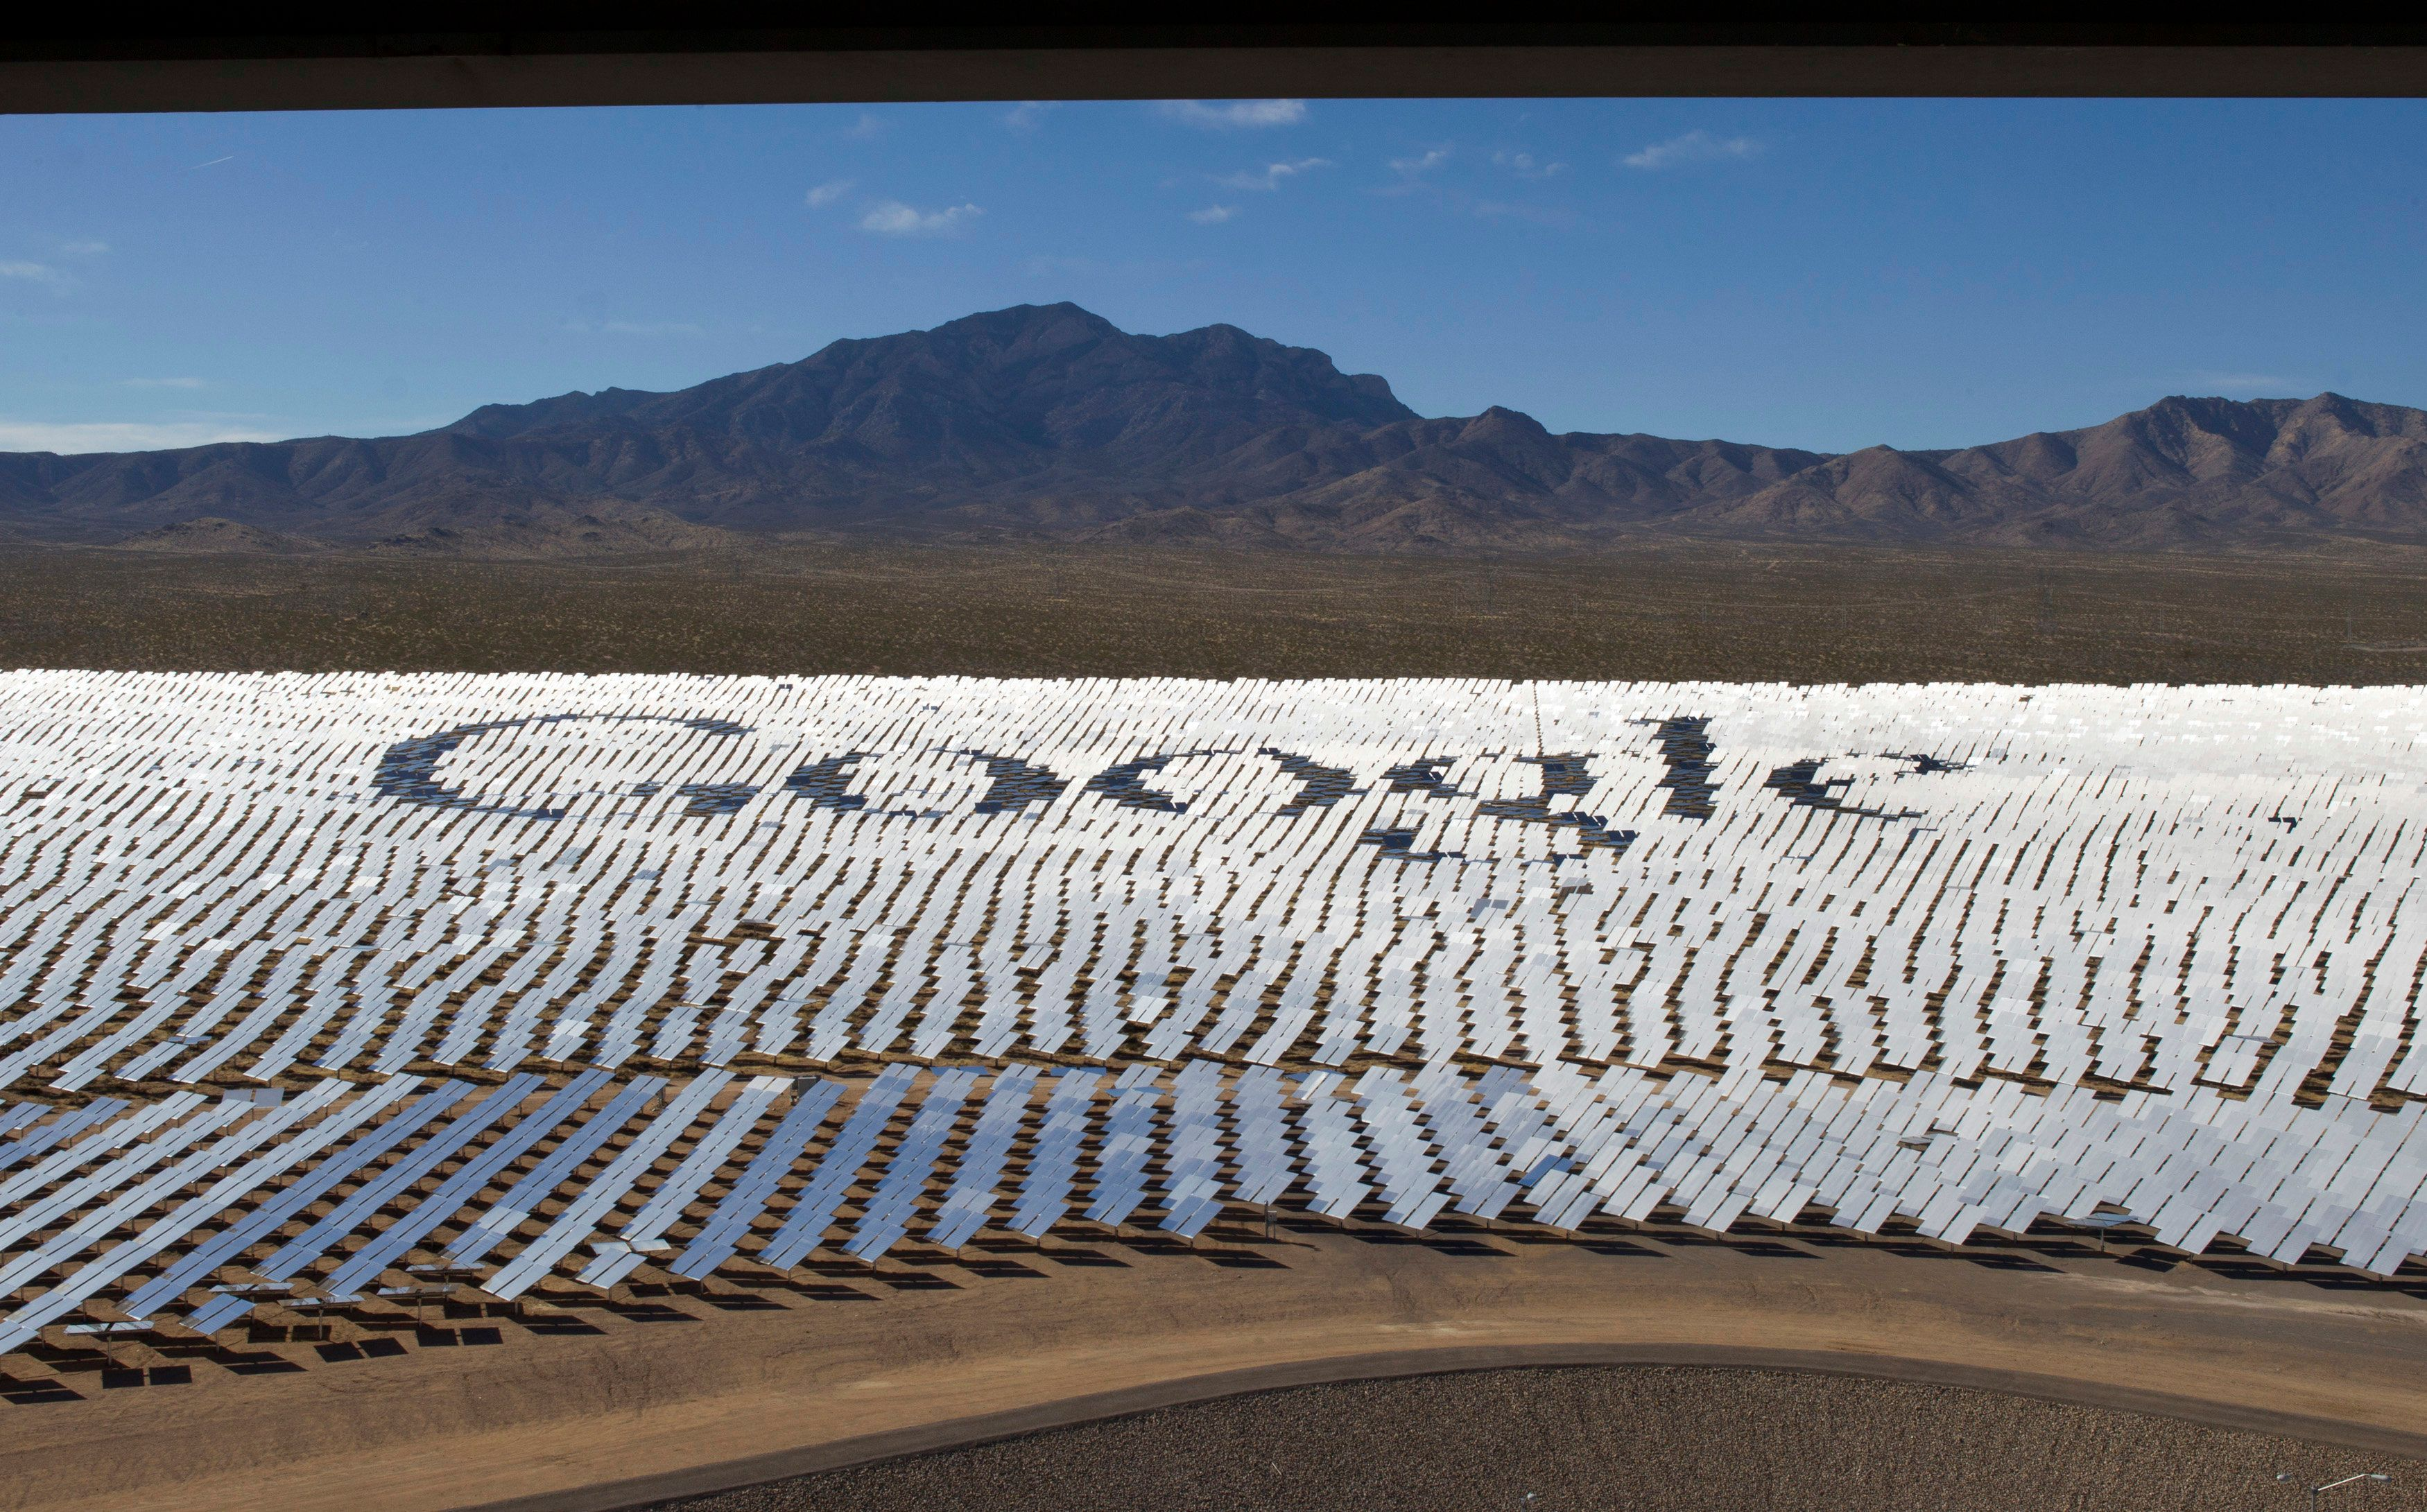 The Google logo is spelled out in heliostats (mirrors that track the sun and reflect the sunlight onto a central receiving po